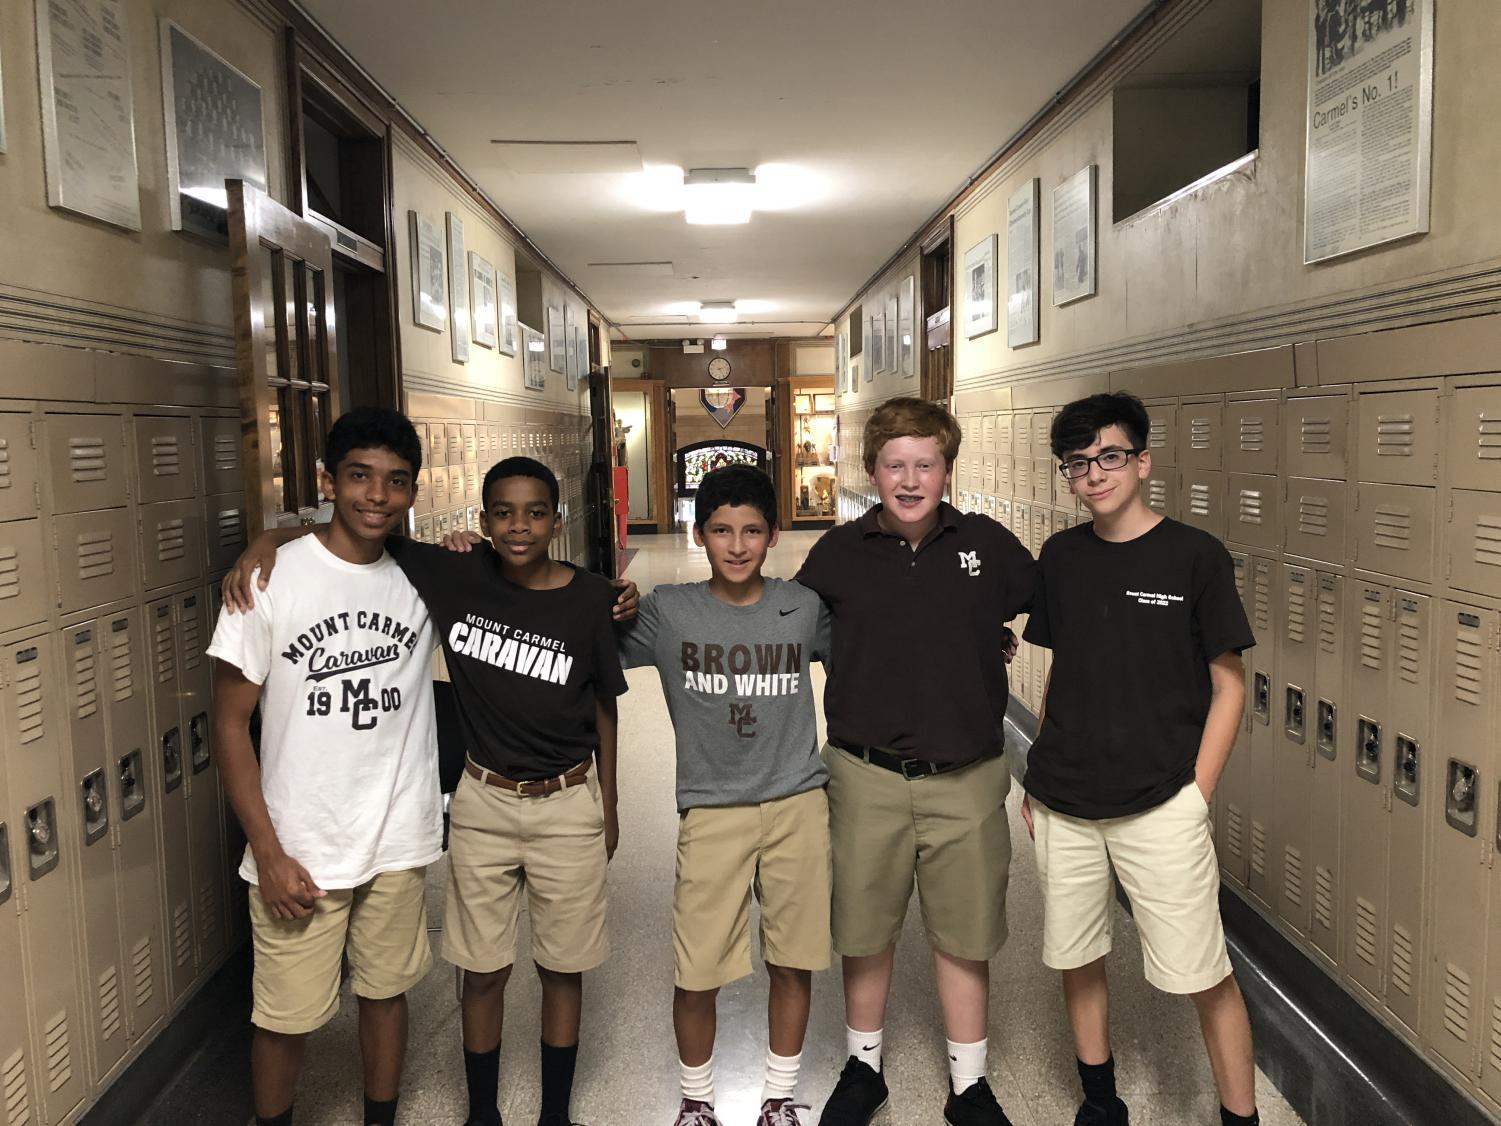 Carlos Banks, Justin Carney, Robert Bonilla, Joe Bird, and Noah Sanchez  were among the freshmen staring this fall at Mount Carmel.